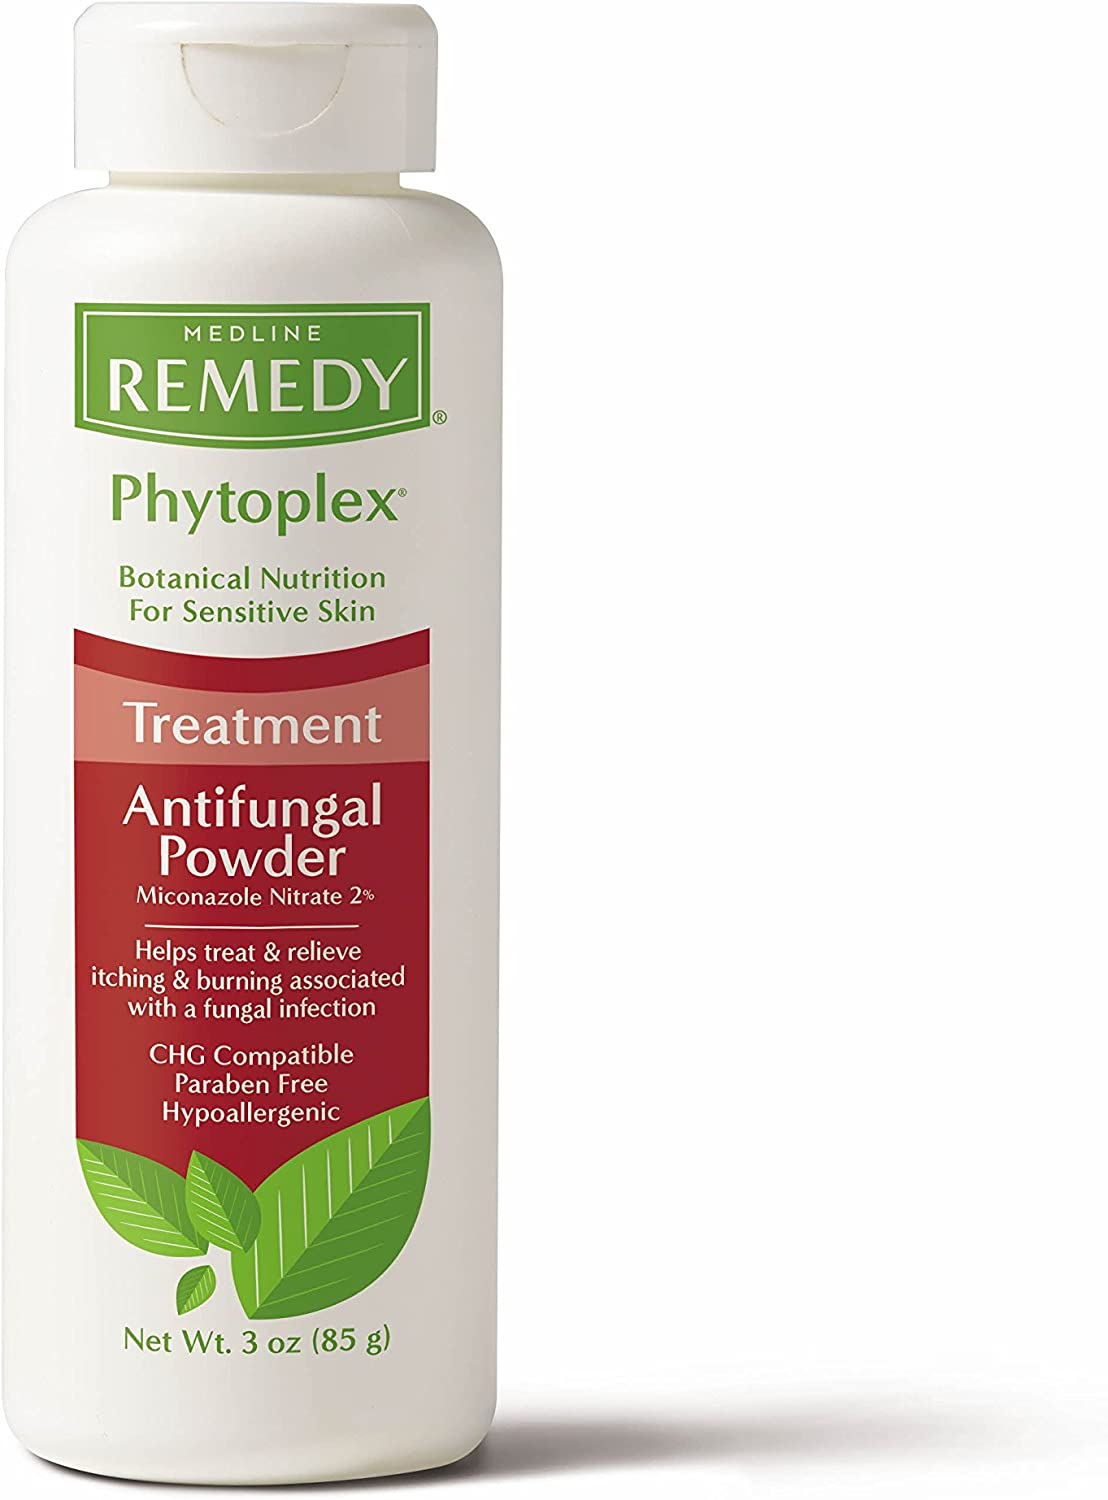 Remedy Phytoplex Antifungal Powder with 2% Miconazole Nitrate for Common Fungal Infections incuding Athlete's Foot, Talc Free, 3 oz